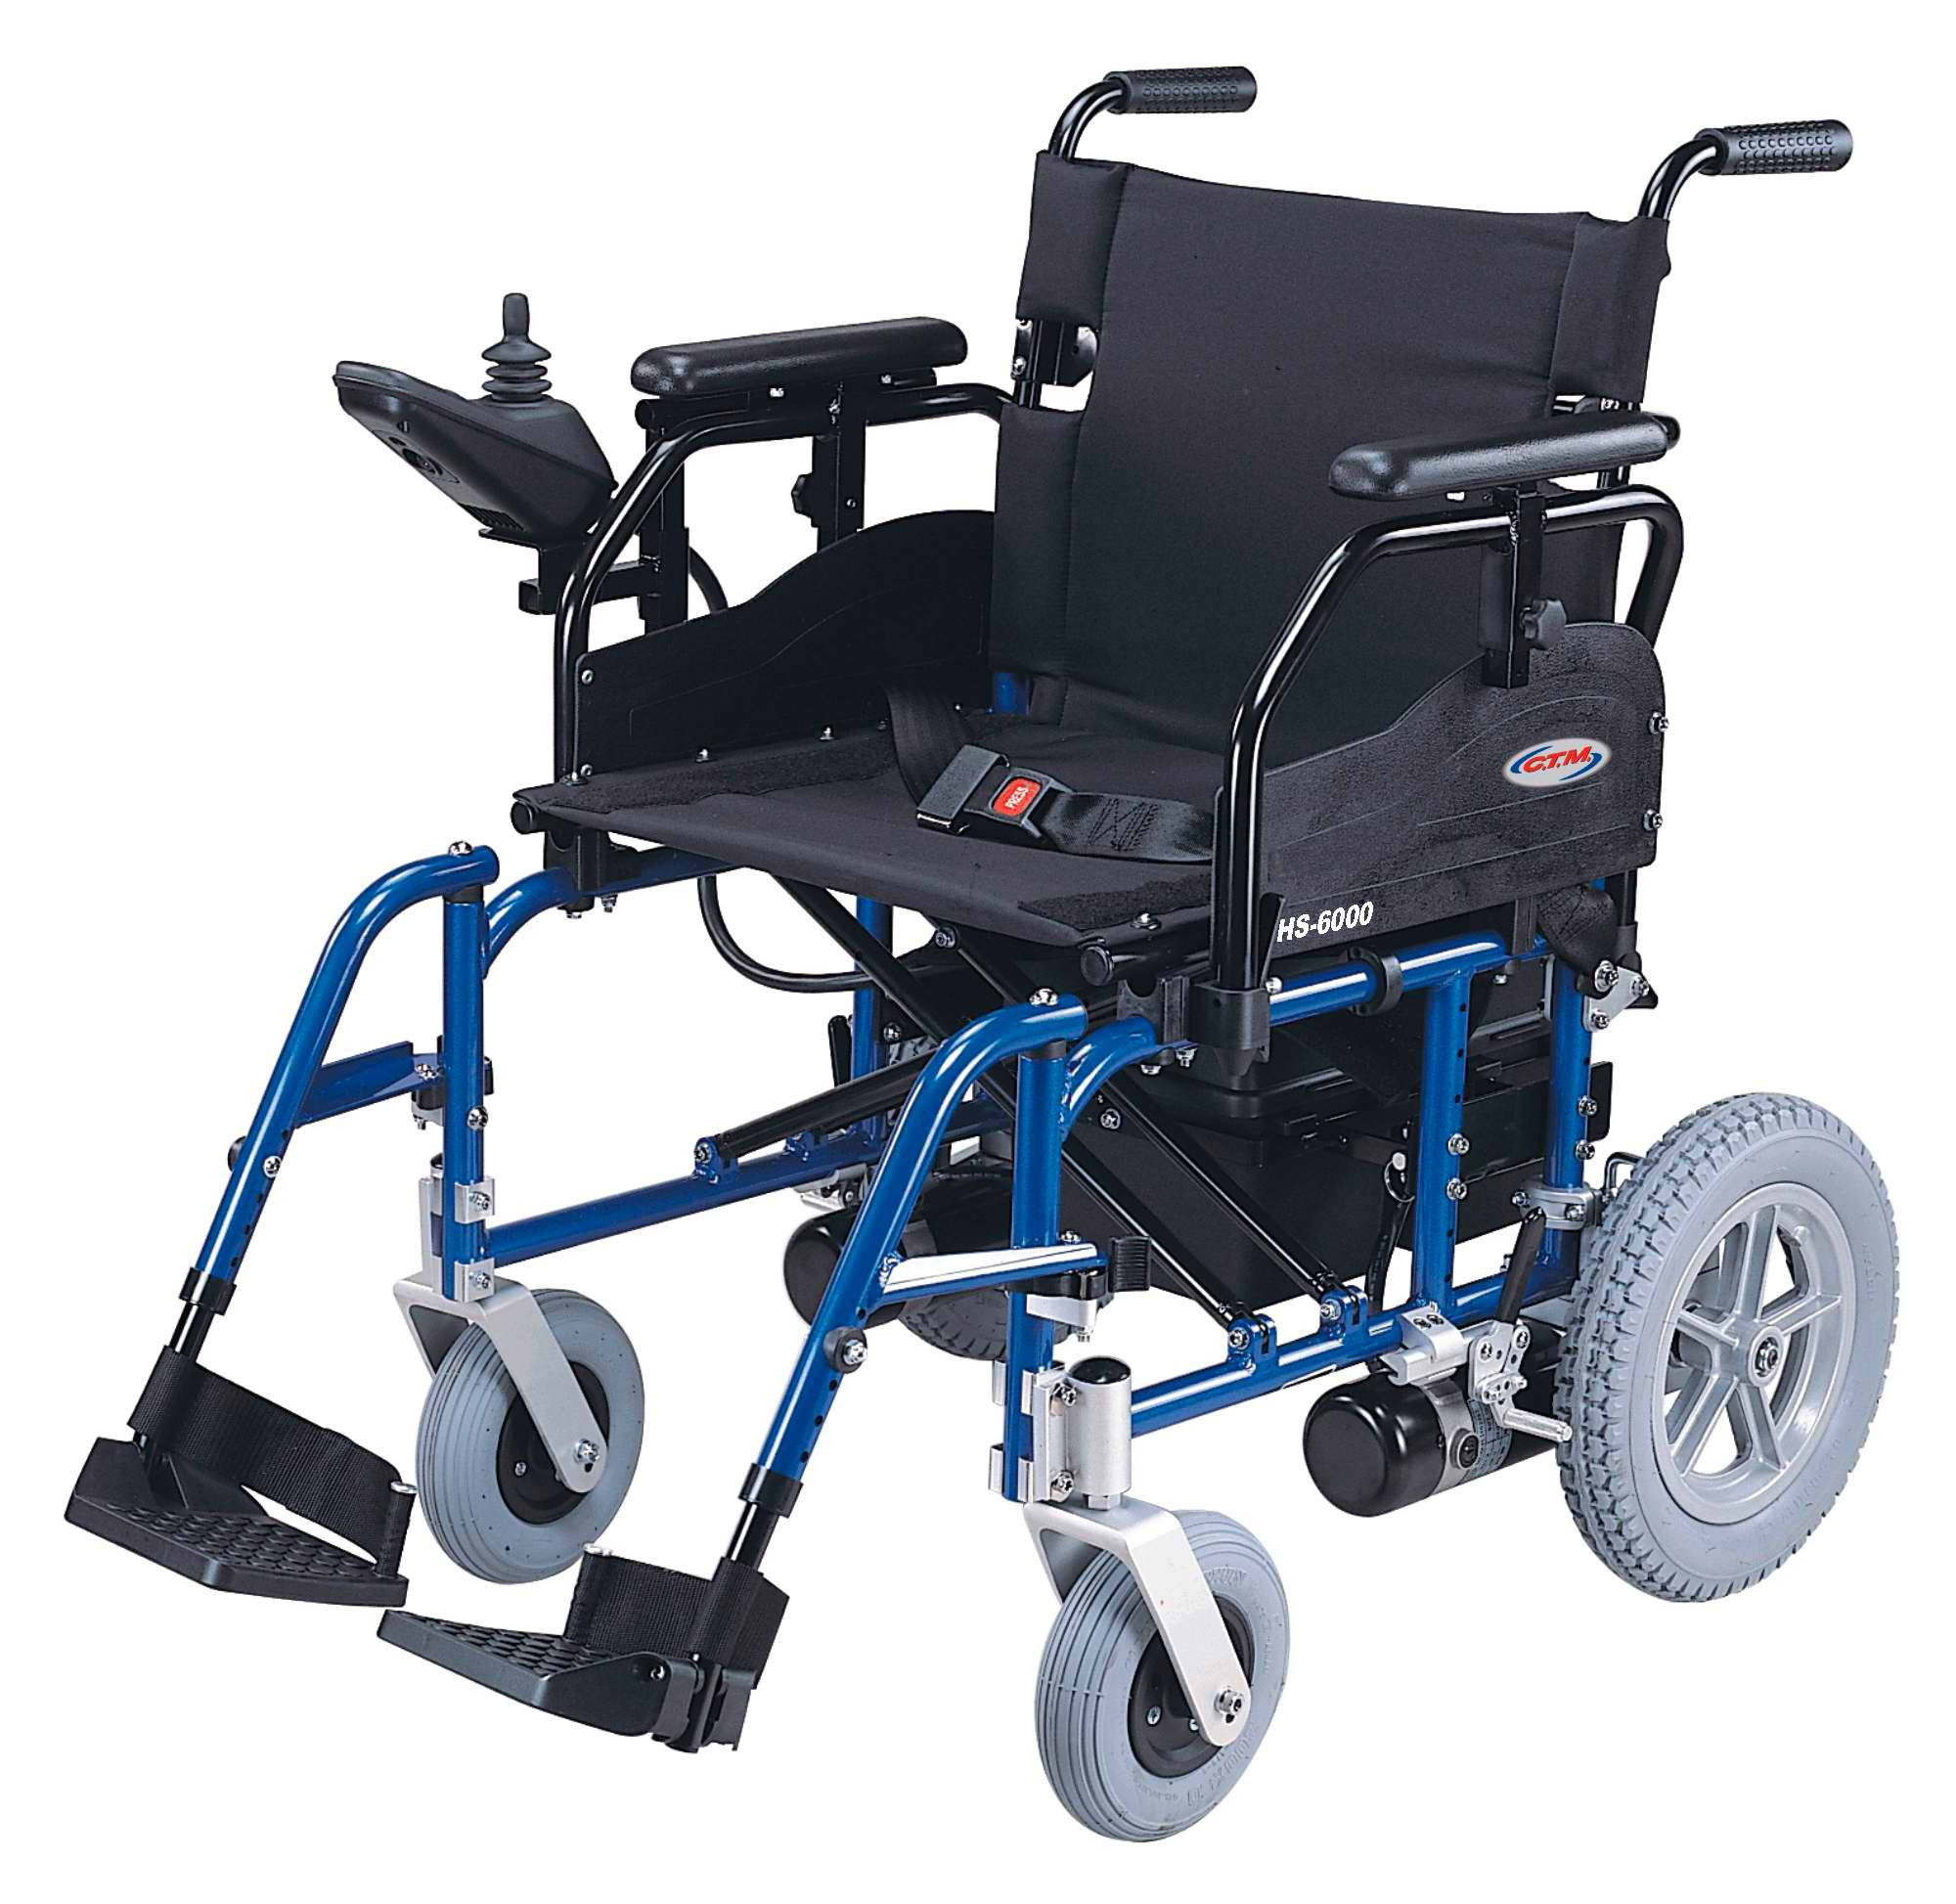 Handicap Chairs For Sale Wheelchair Assistance Used